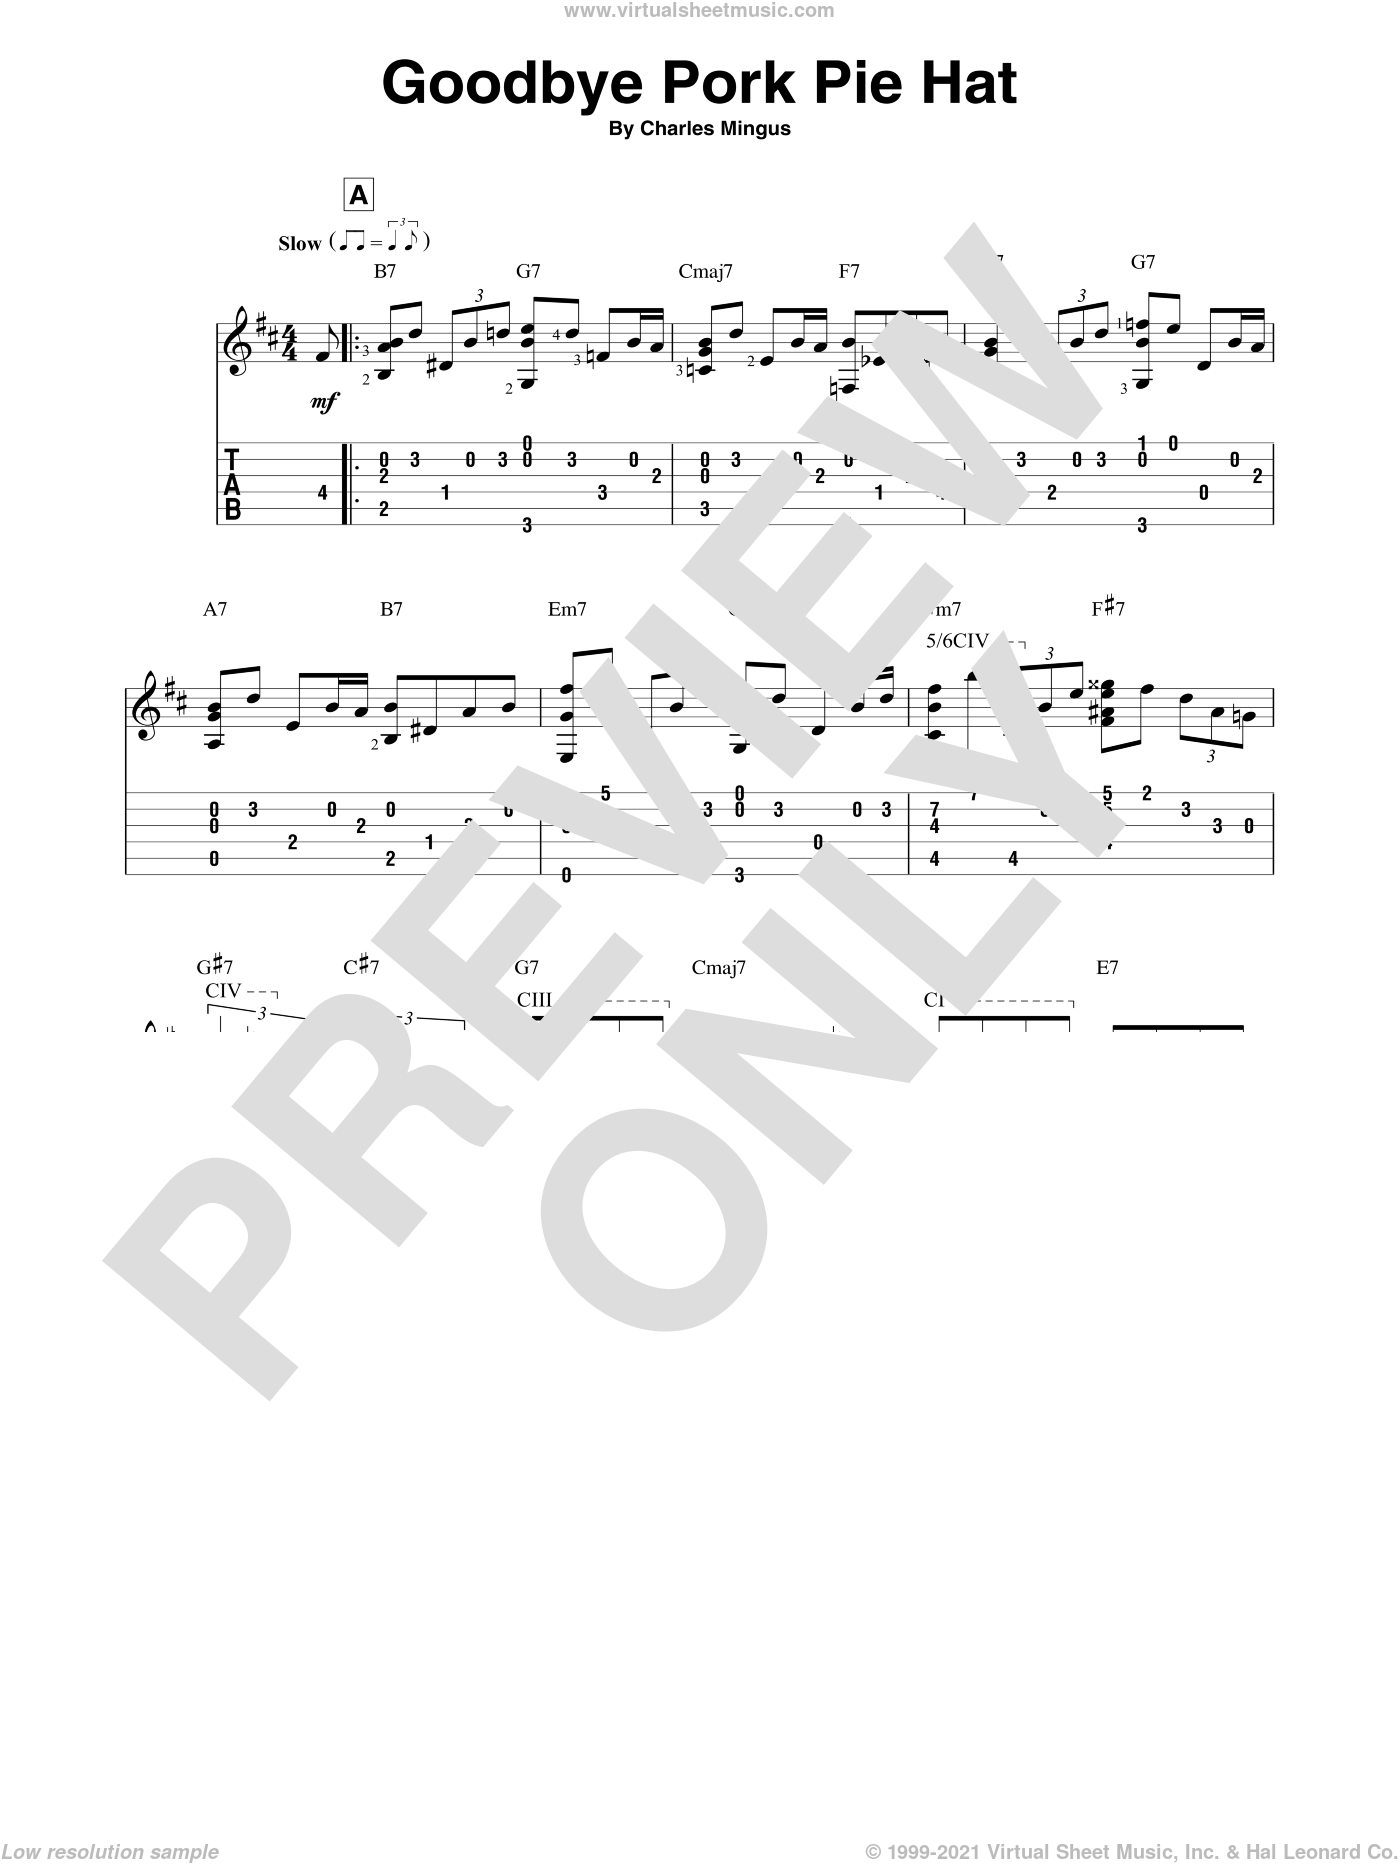 Goodbye Pork Pie Hat sheet music for guitar solo by Charles Mingus, intermediate skill level